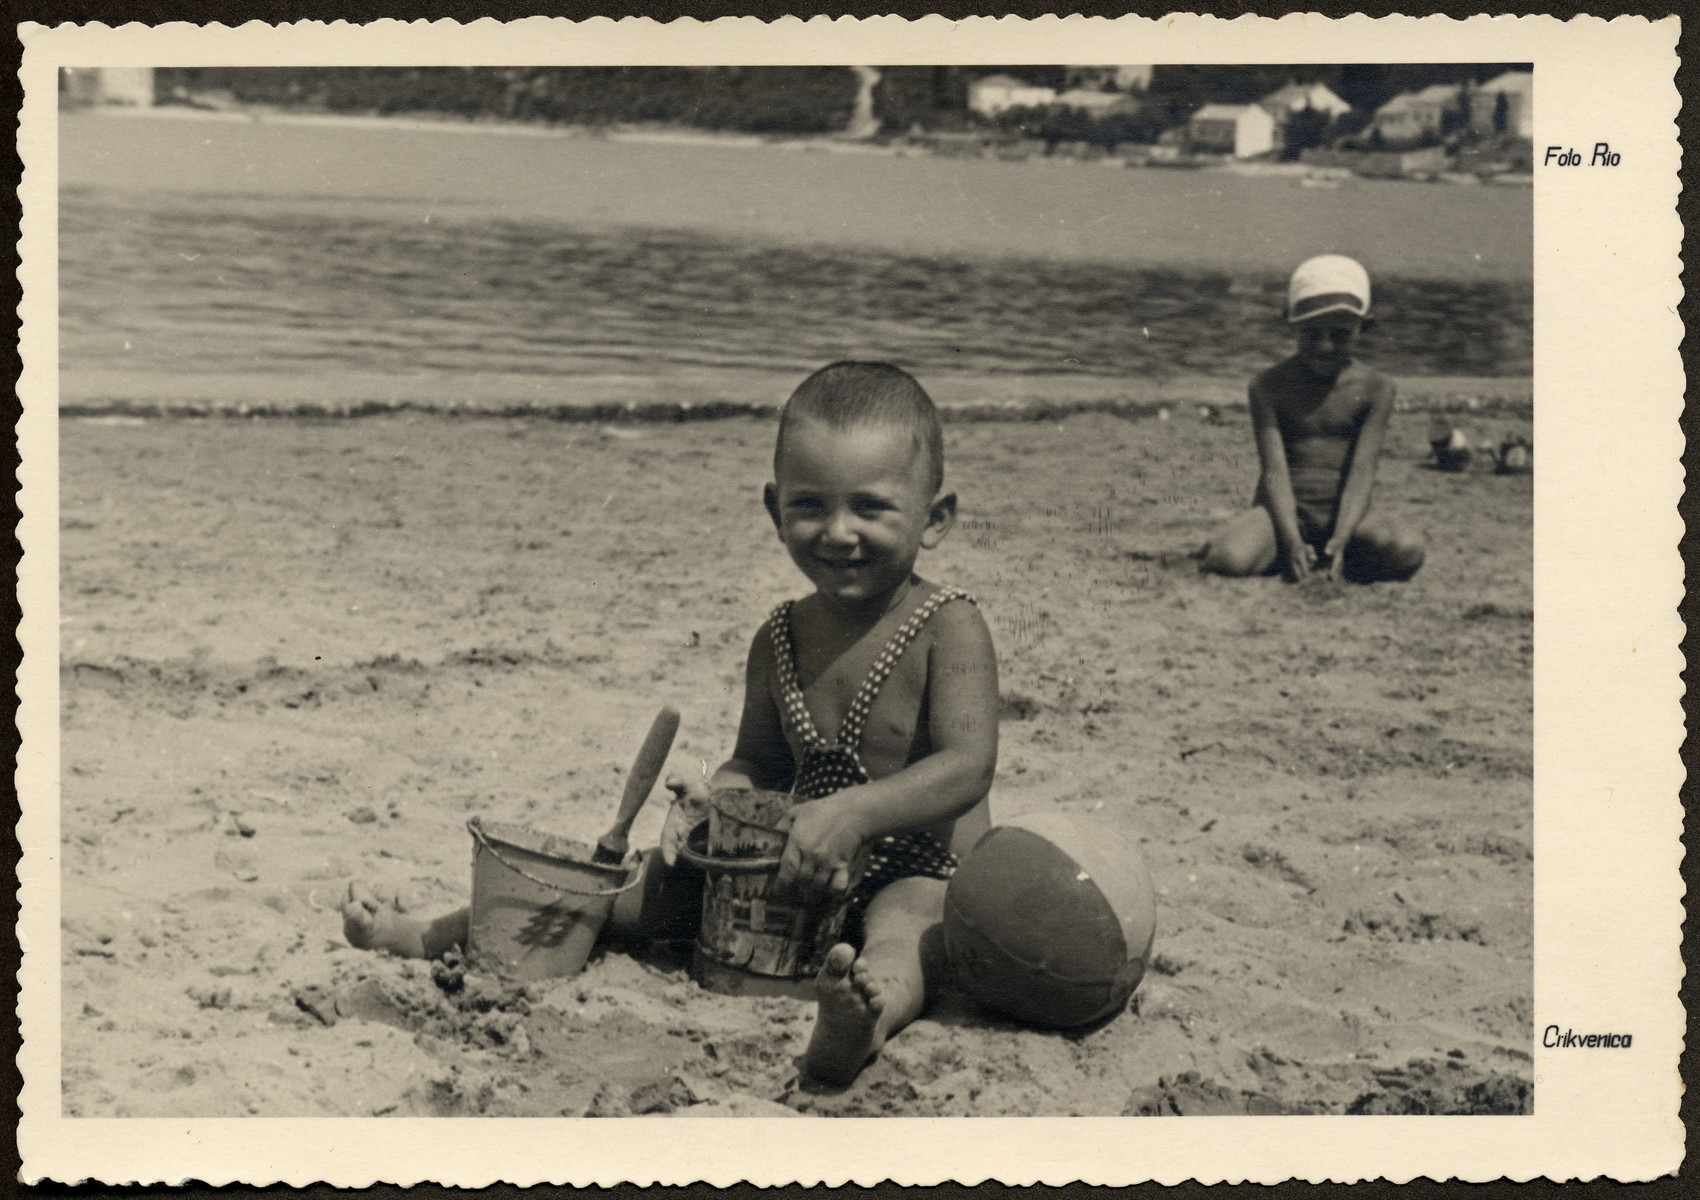 Manny Mandel plays on the beach with his toys in Crikvenica on the Dalmation coast .